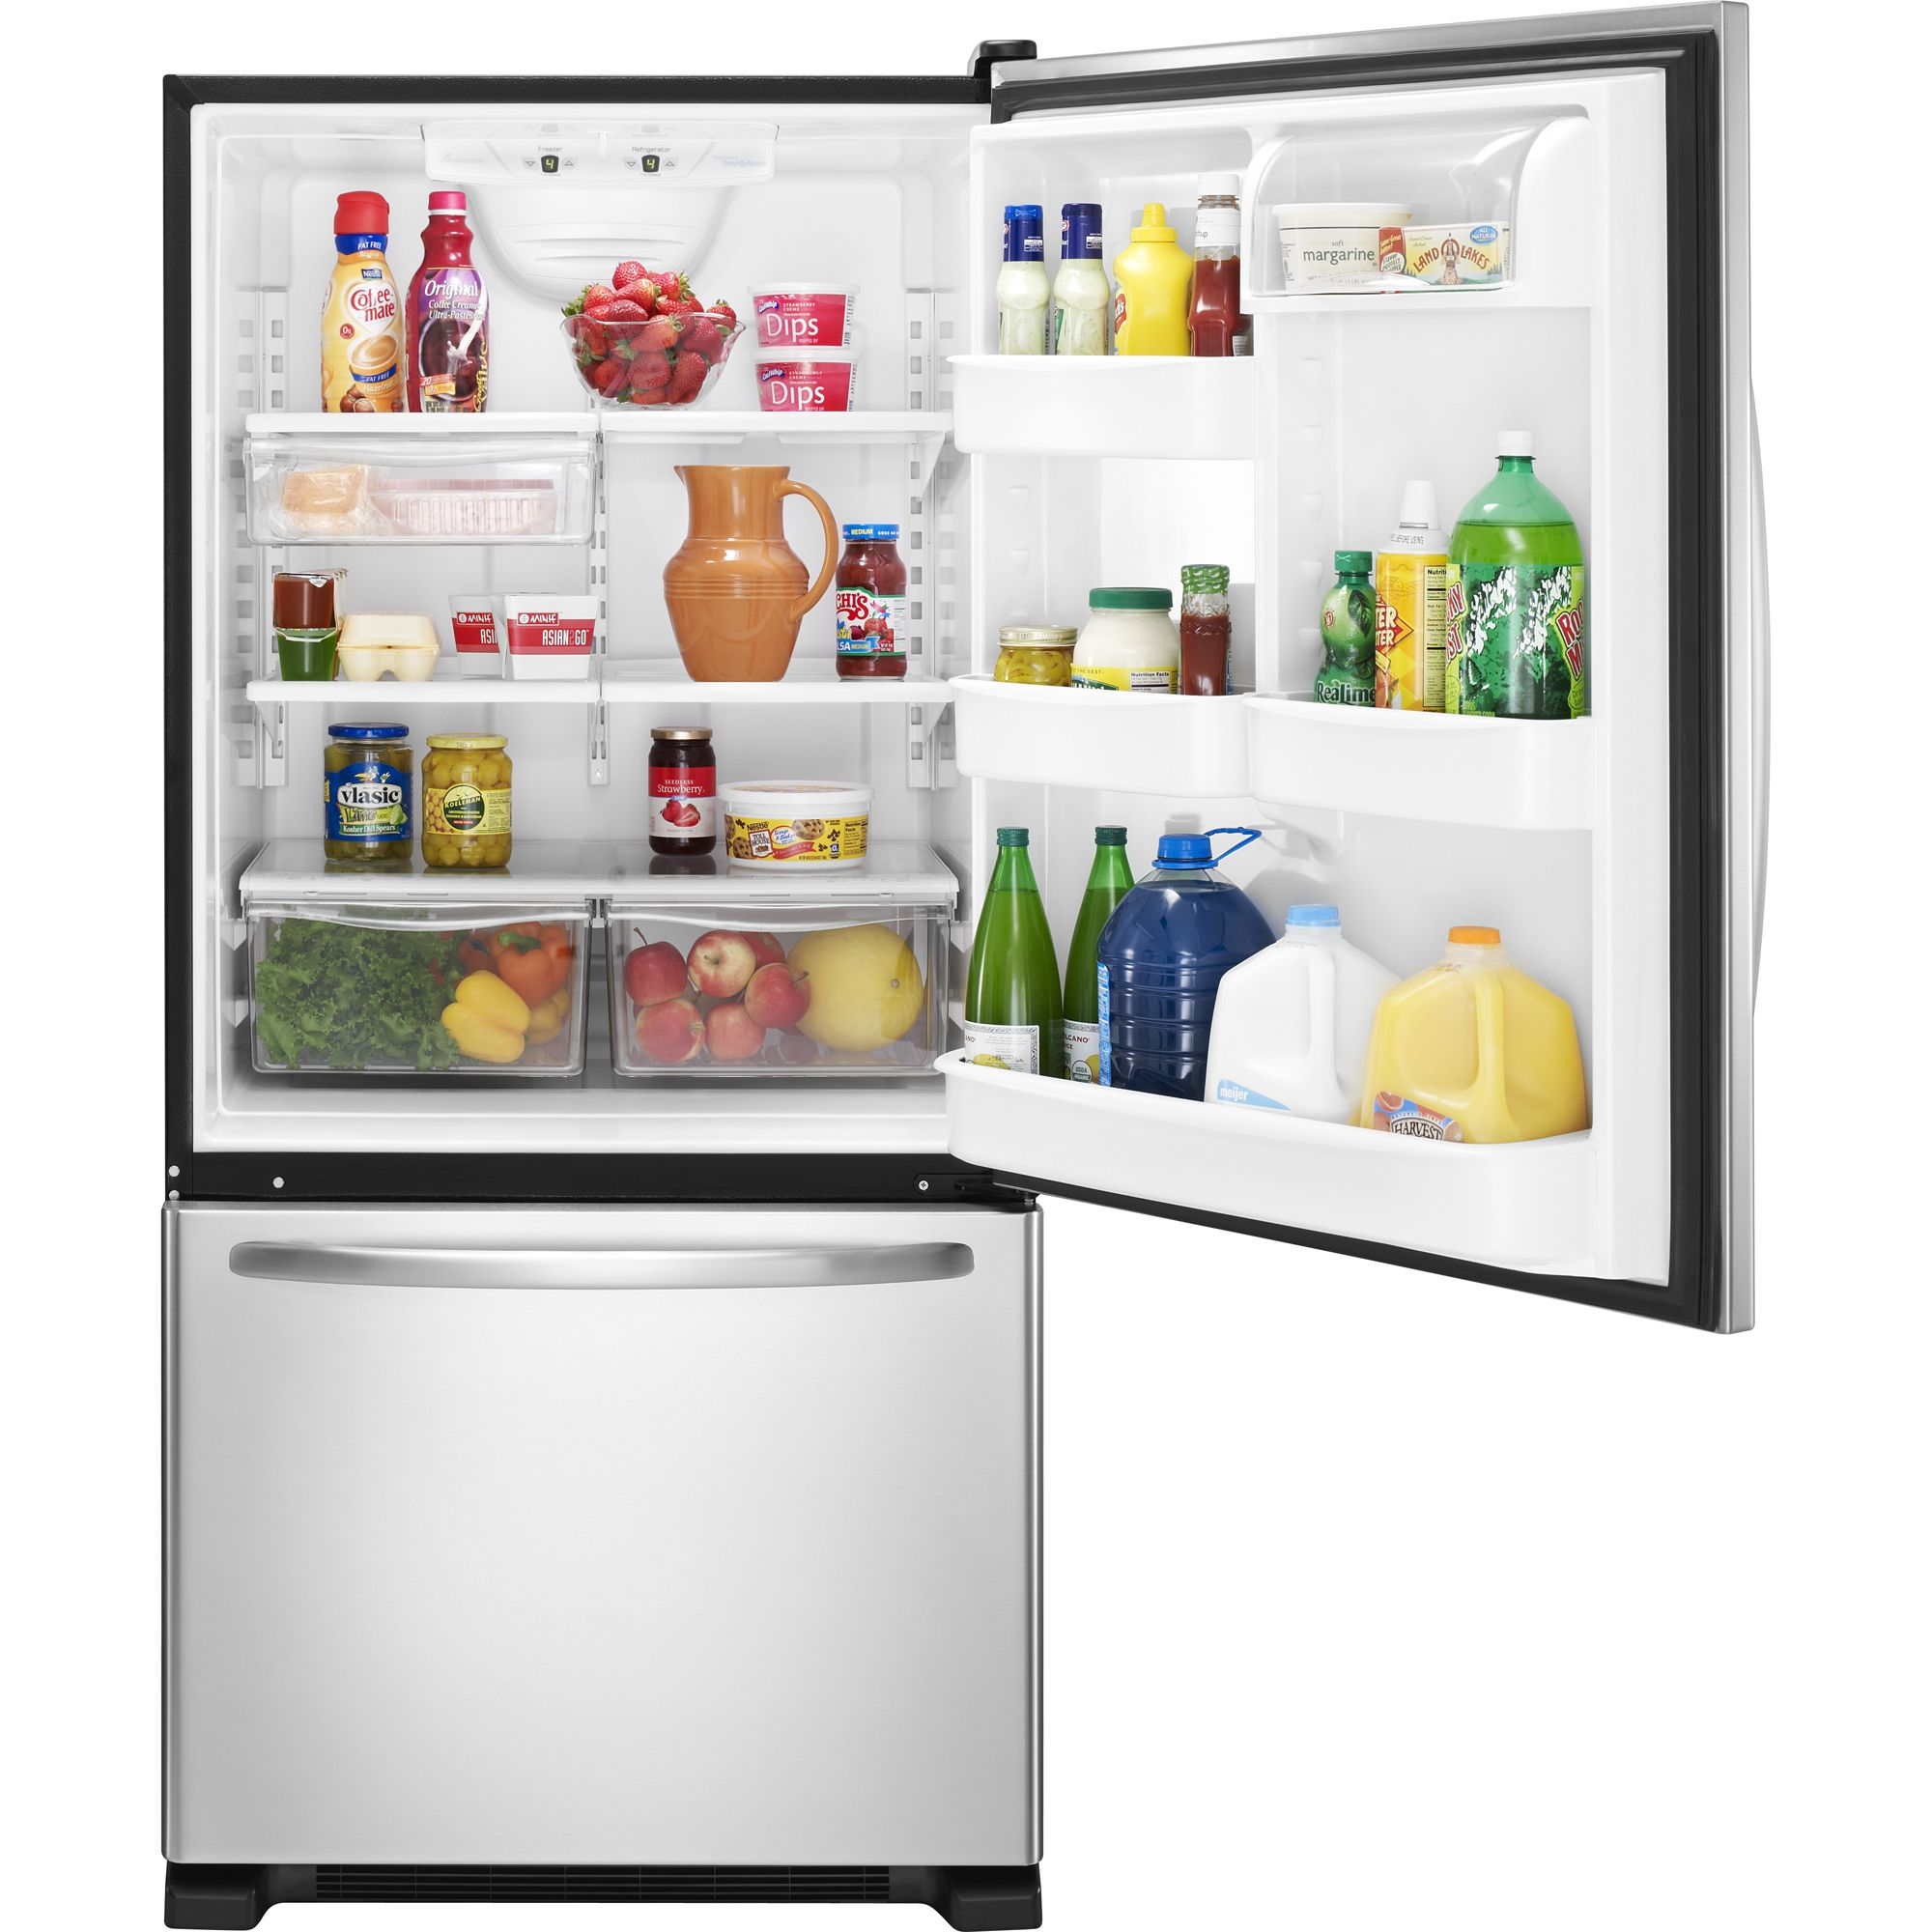 Amana 21.9 cu. ft. Single Door Bottom Freezer Refrigerator - Stainless Steel